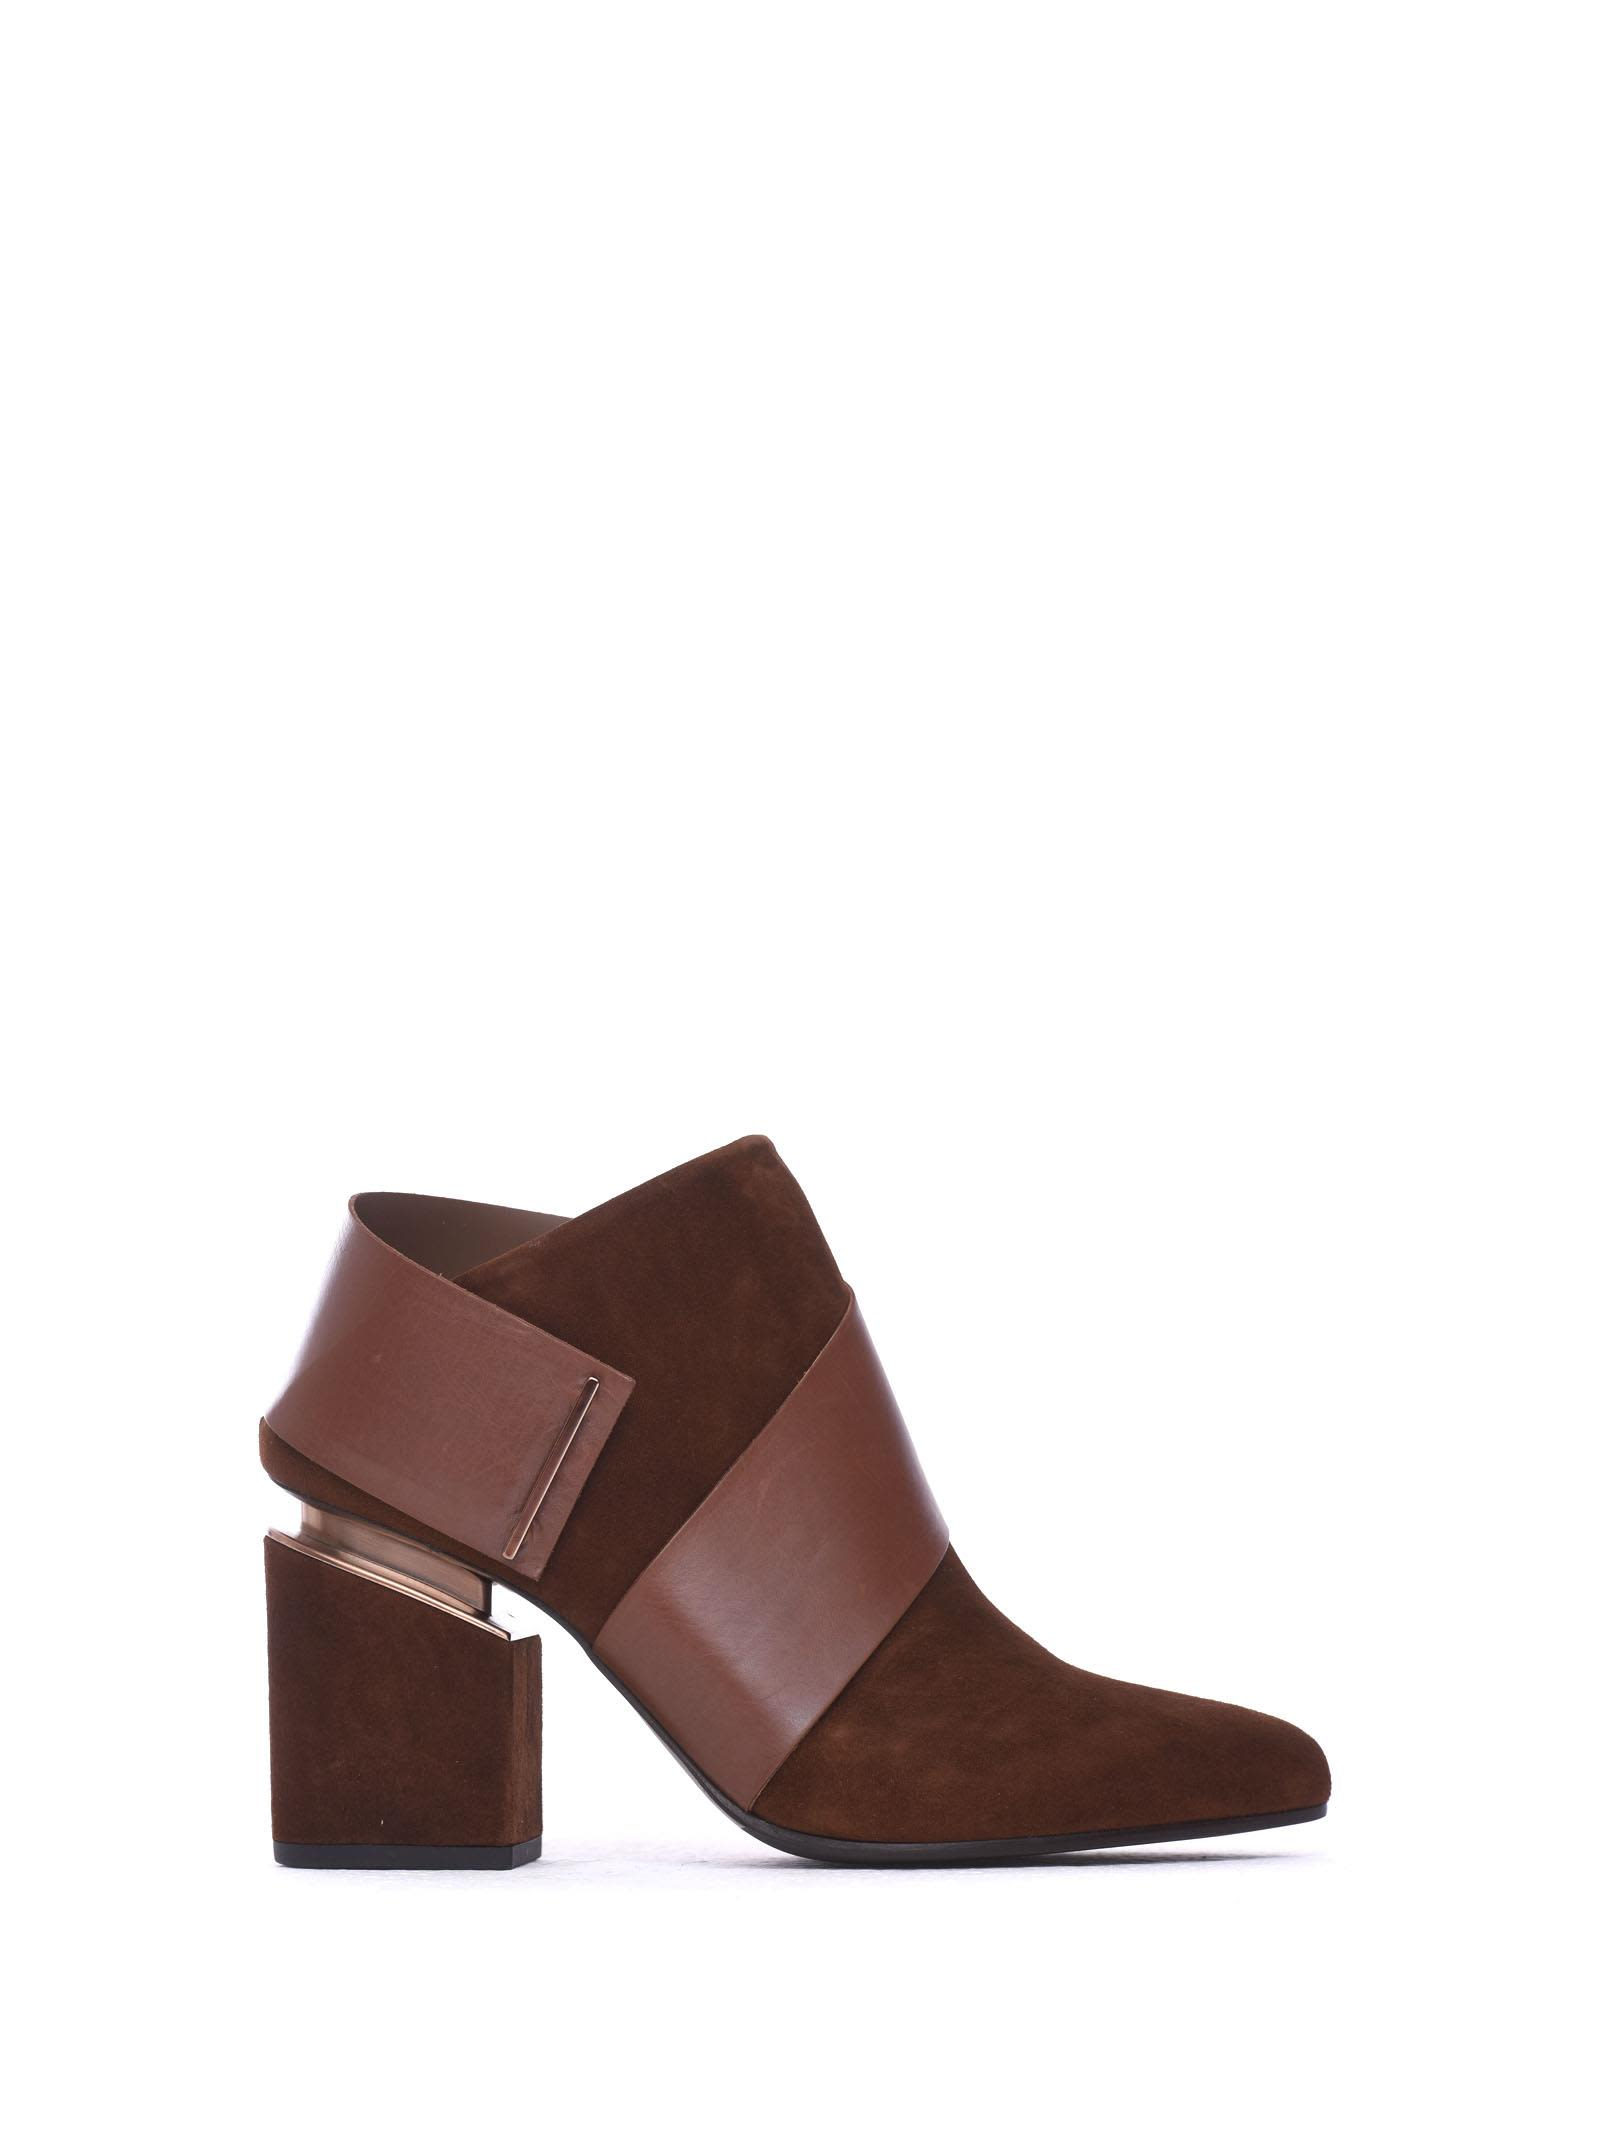 VIC MATIE Ankle Boots Cognac-Coloured Suede Strap in Marrone